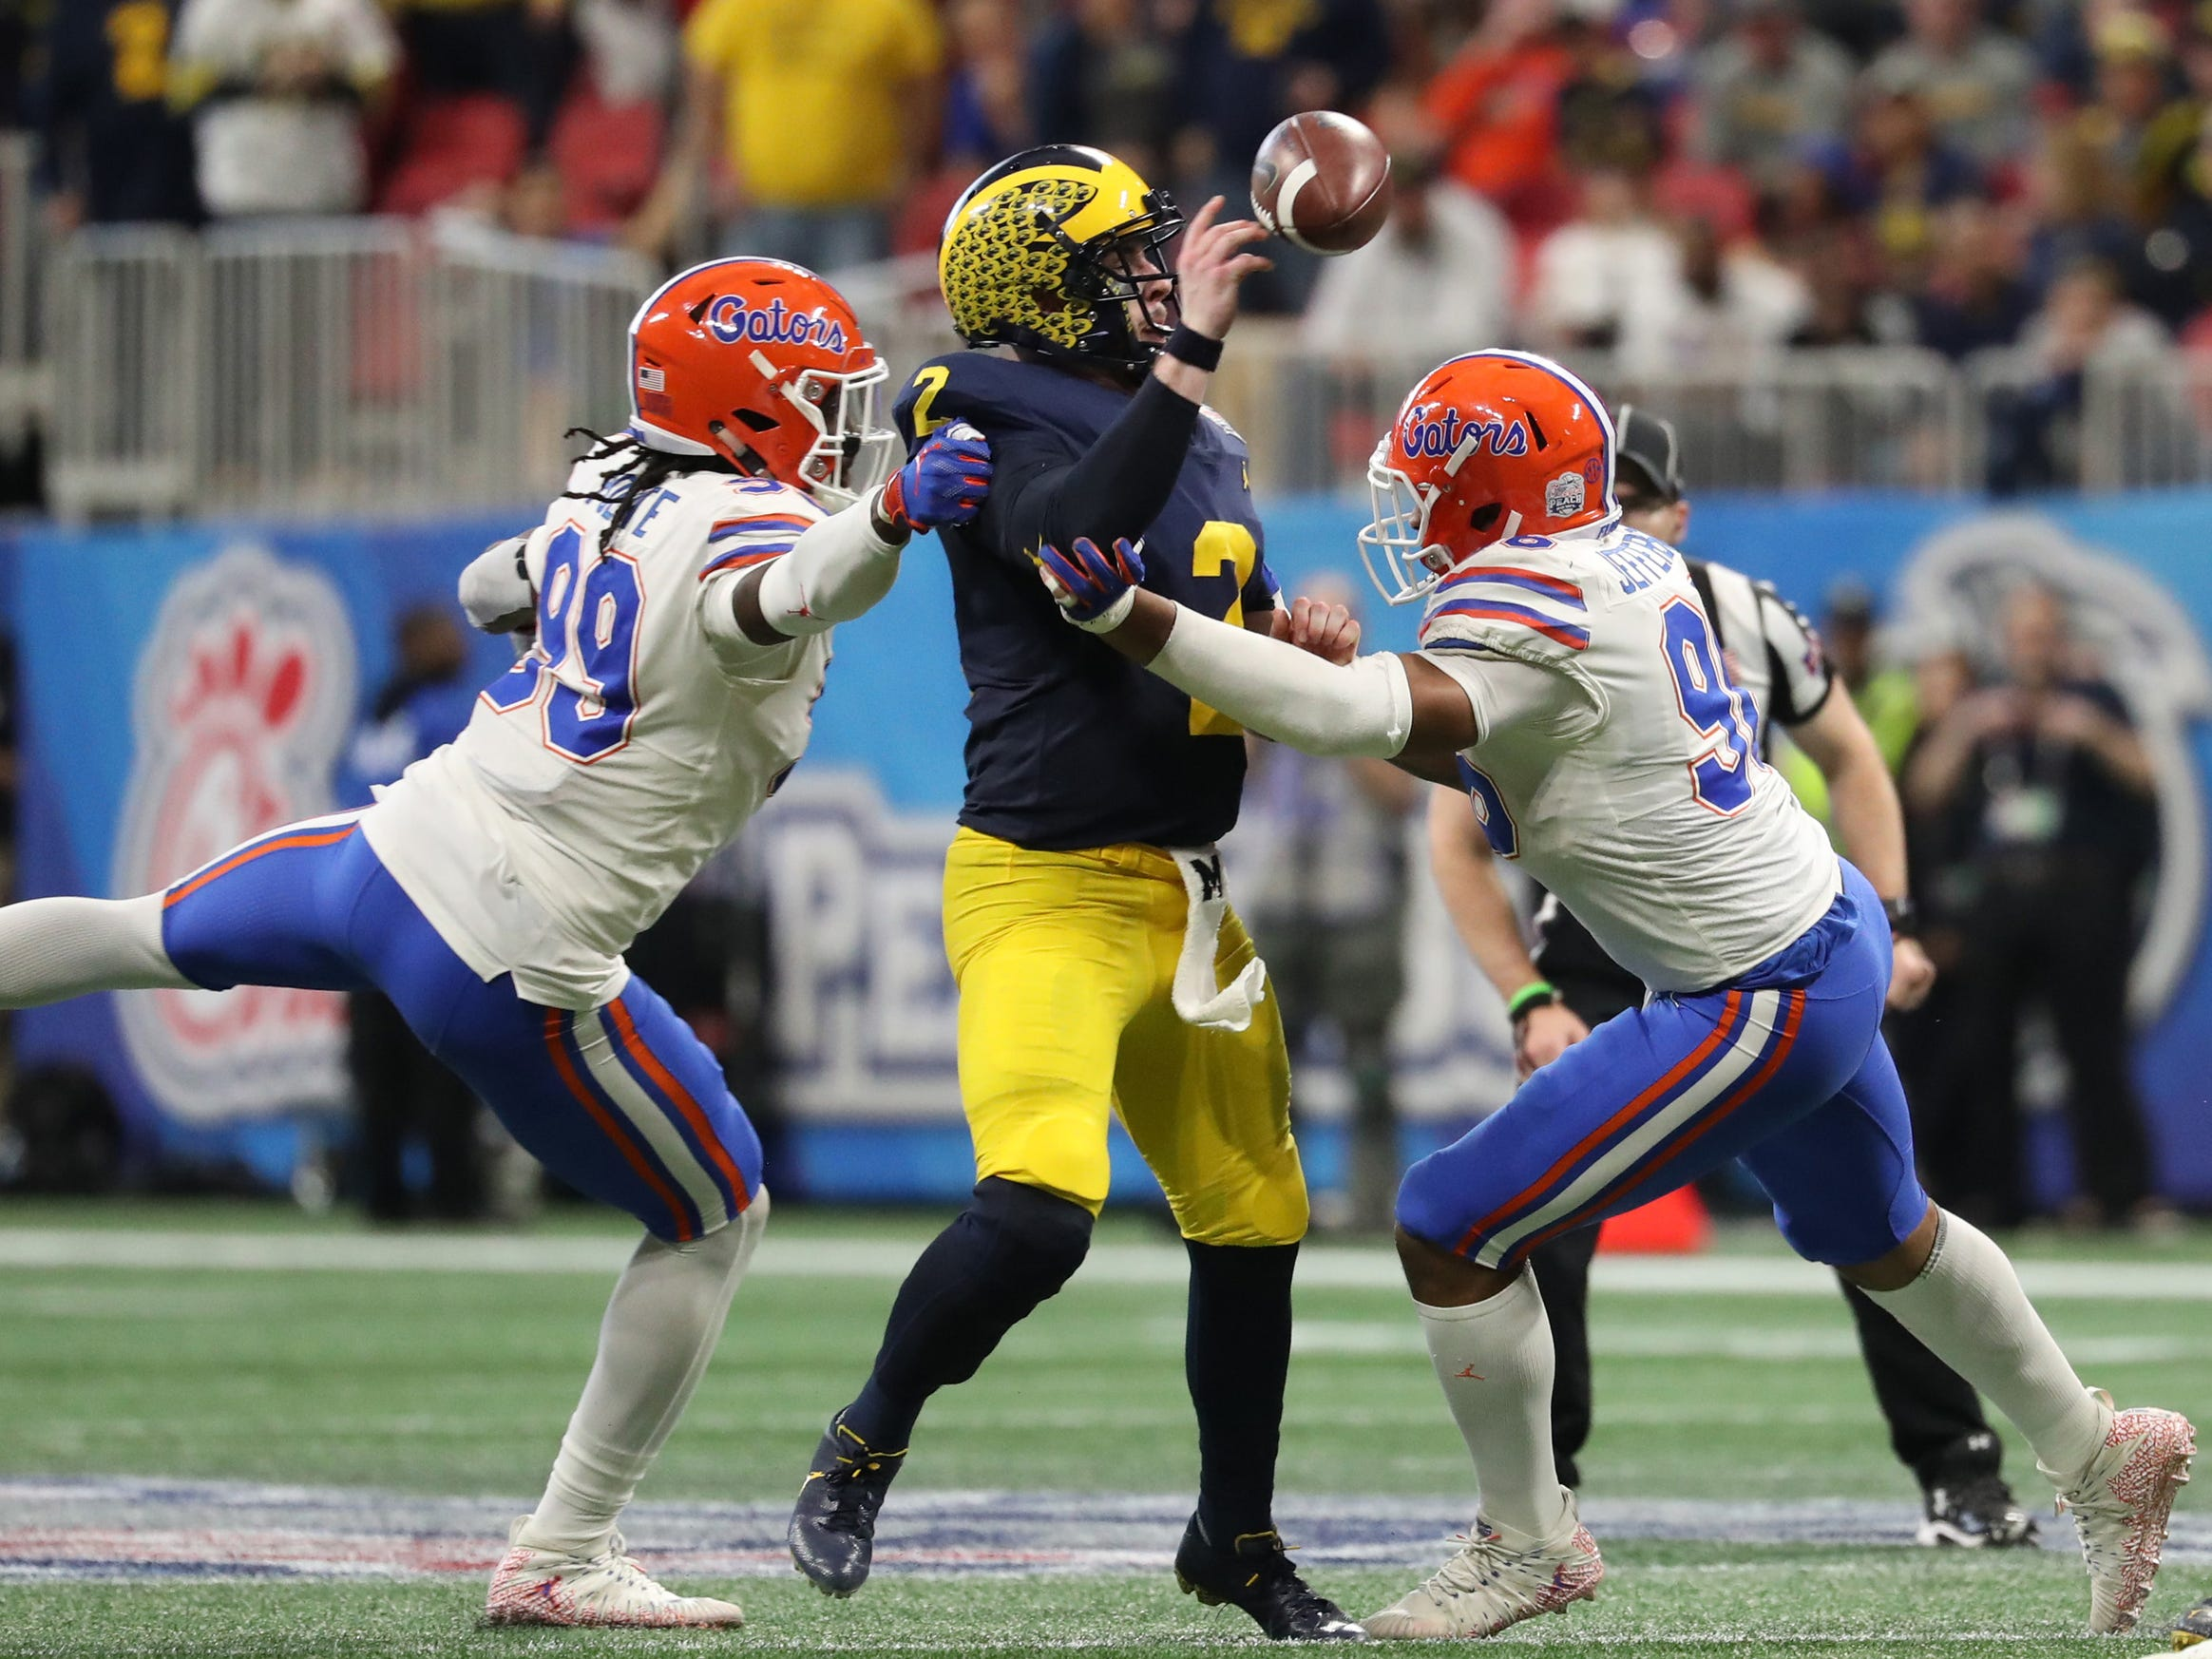 Michigan quarterback Shea Patterson fumbles the ball against Florida defensive lineman Jachai Polite, left, and defensive lineman Cece Jefferson in the second quarter of the Peach Bowl on Saturday, Dec. 29, 2018, in Atlanta.